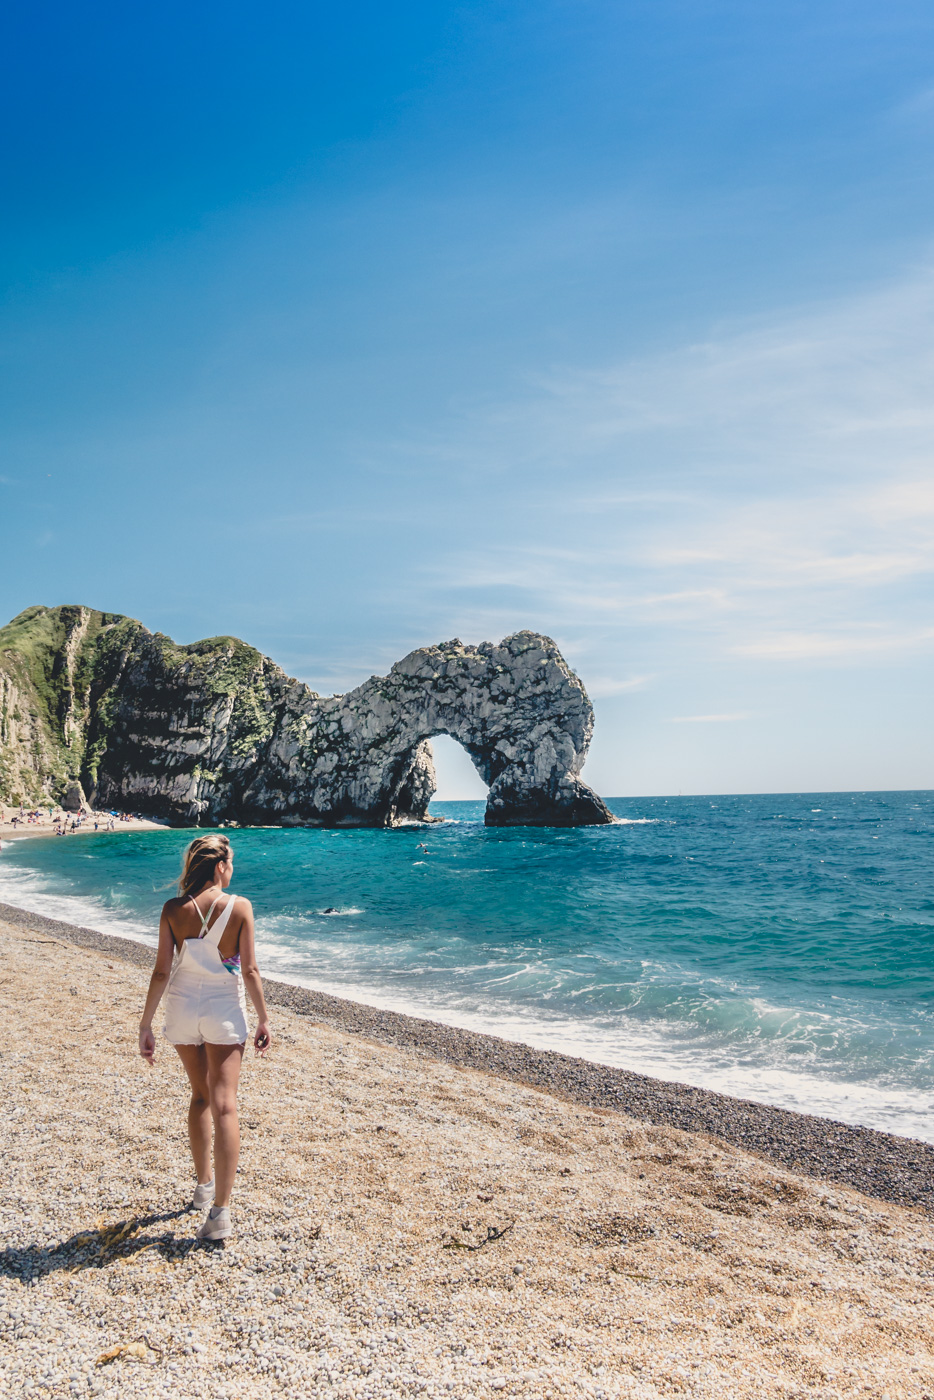 Dorset UK Durdle Door England